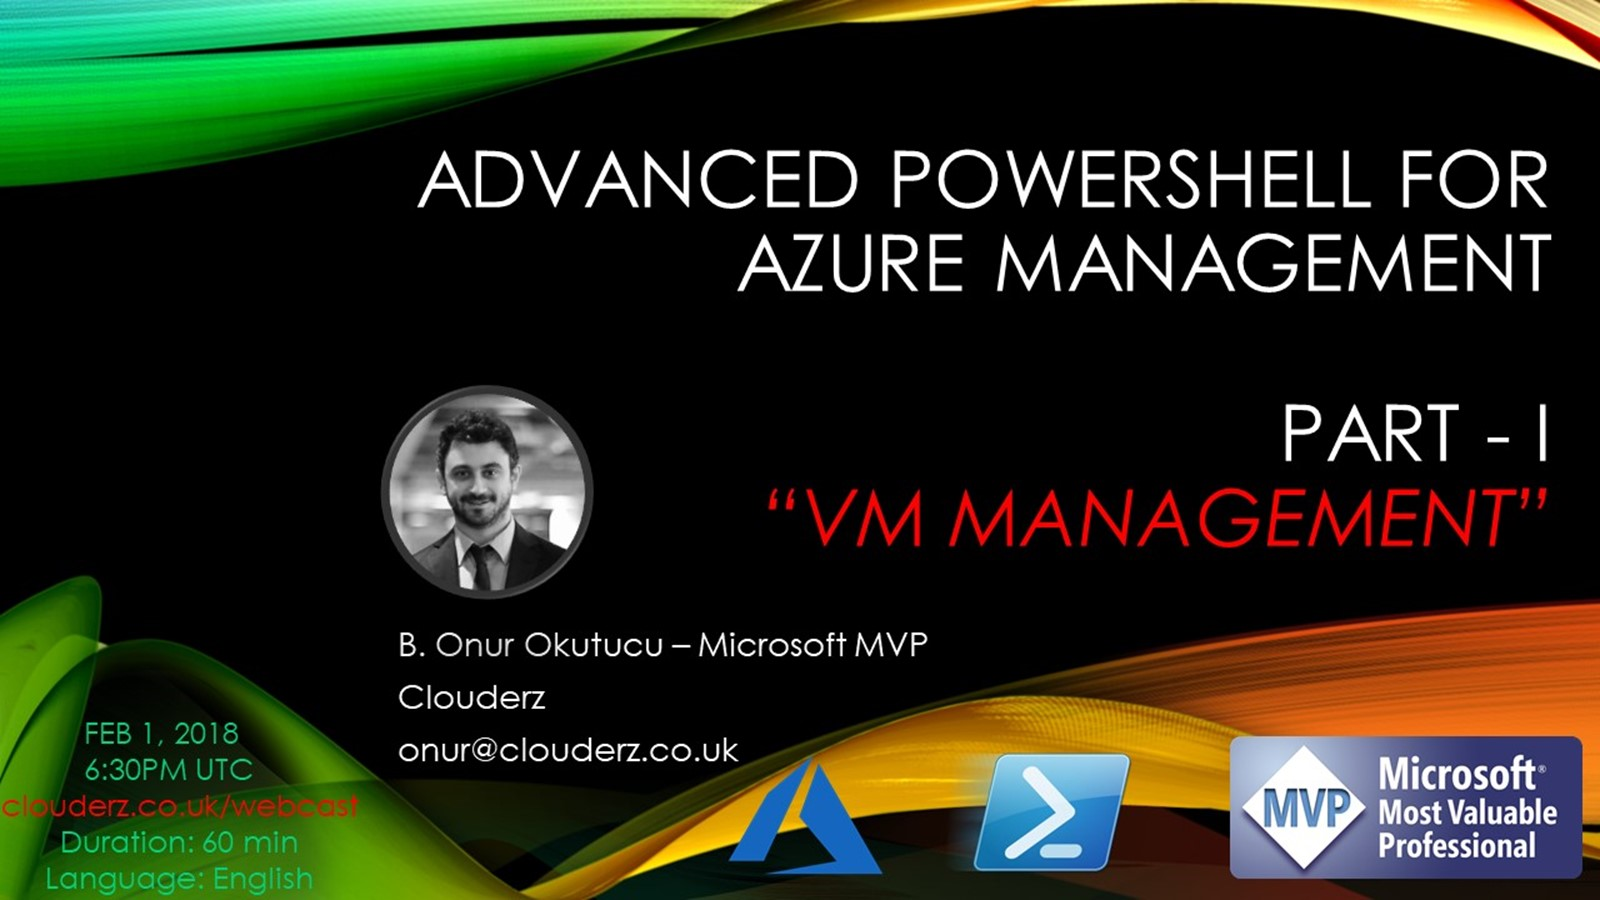 Gelismis Powershell ile Azure Yonetimi – Part I – VM Management